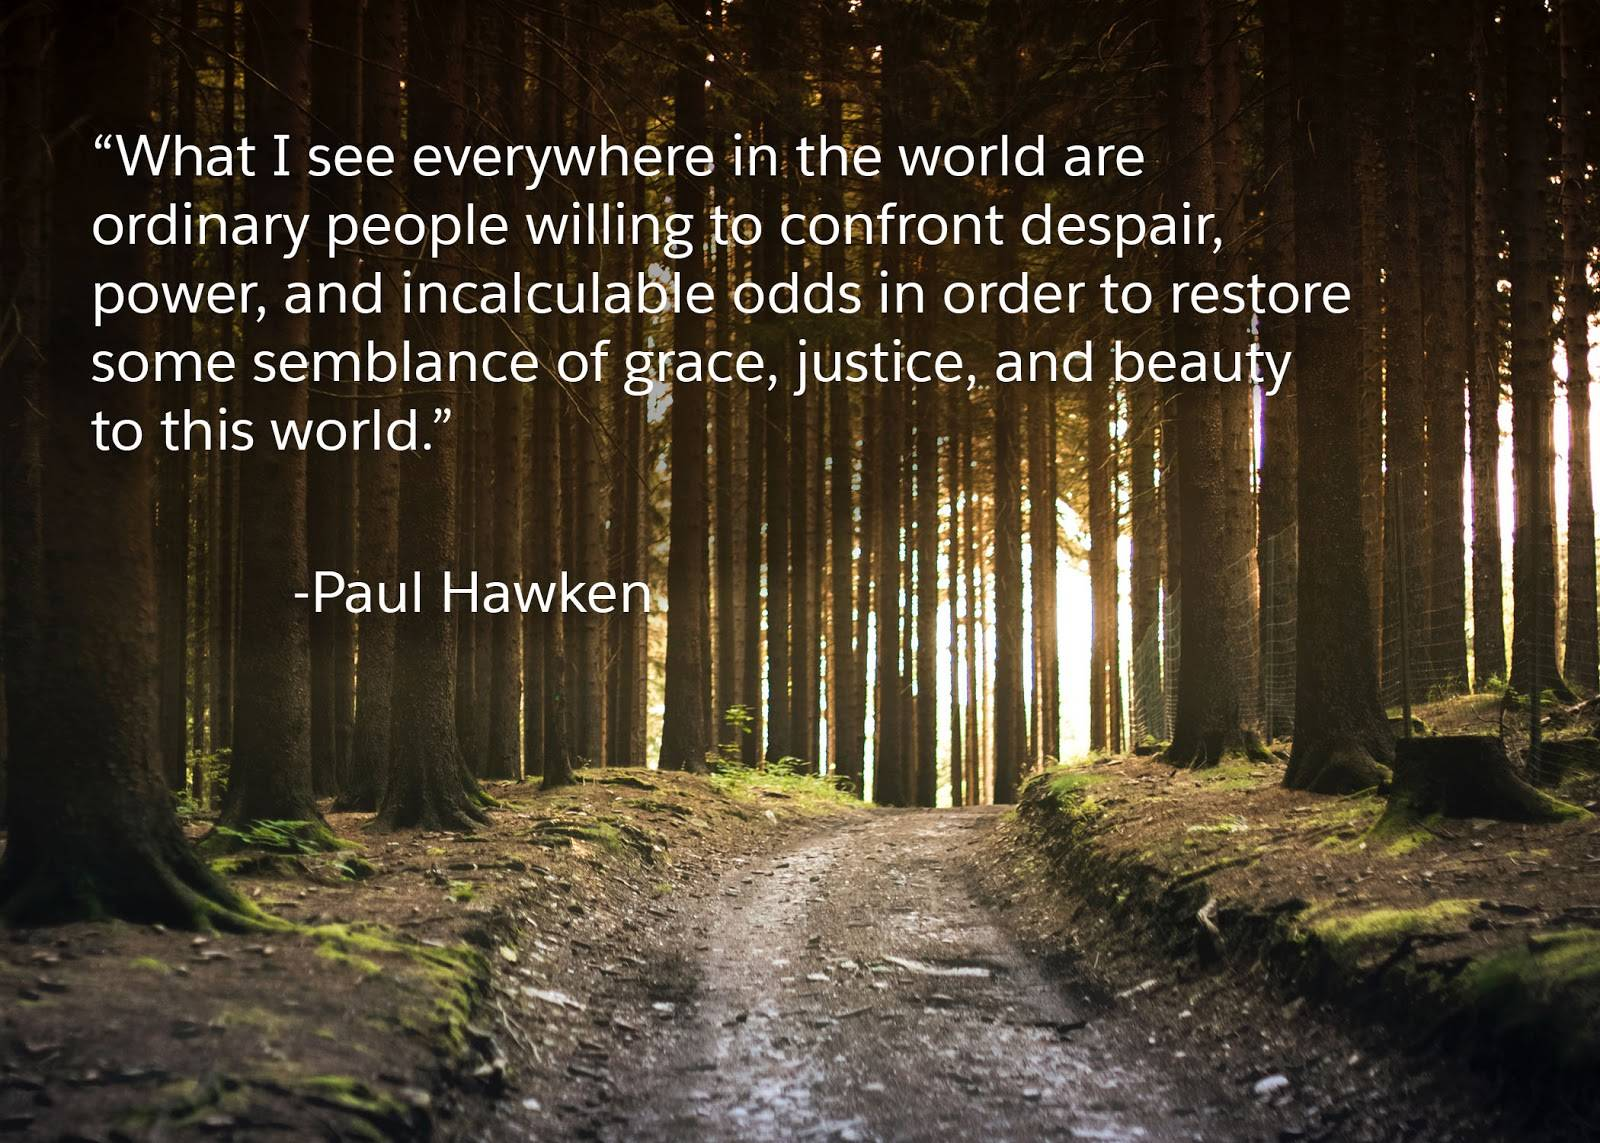 """What I see everywhere in the world are ordinary people willing to confront despair, power, and incalculable odds in order to restore some semblance of grace, justice, and beauty to this world."" —Paul Hawken"